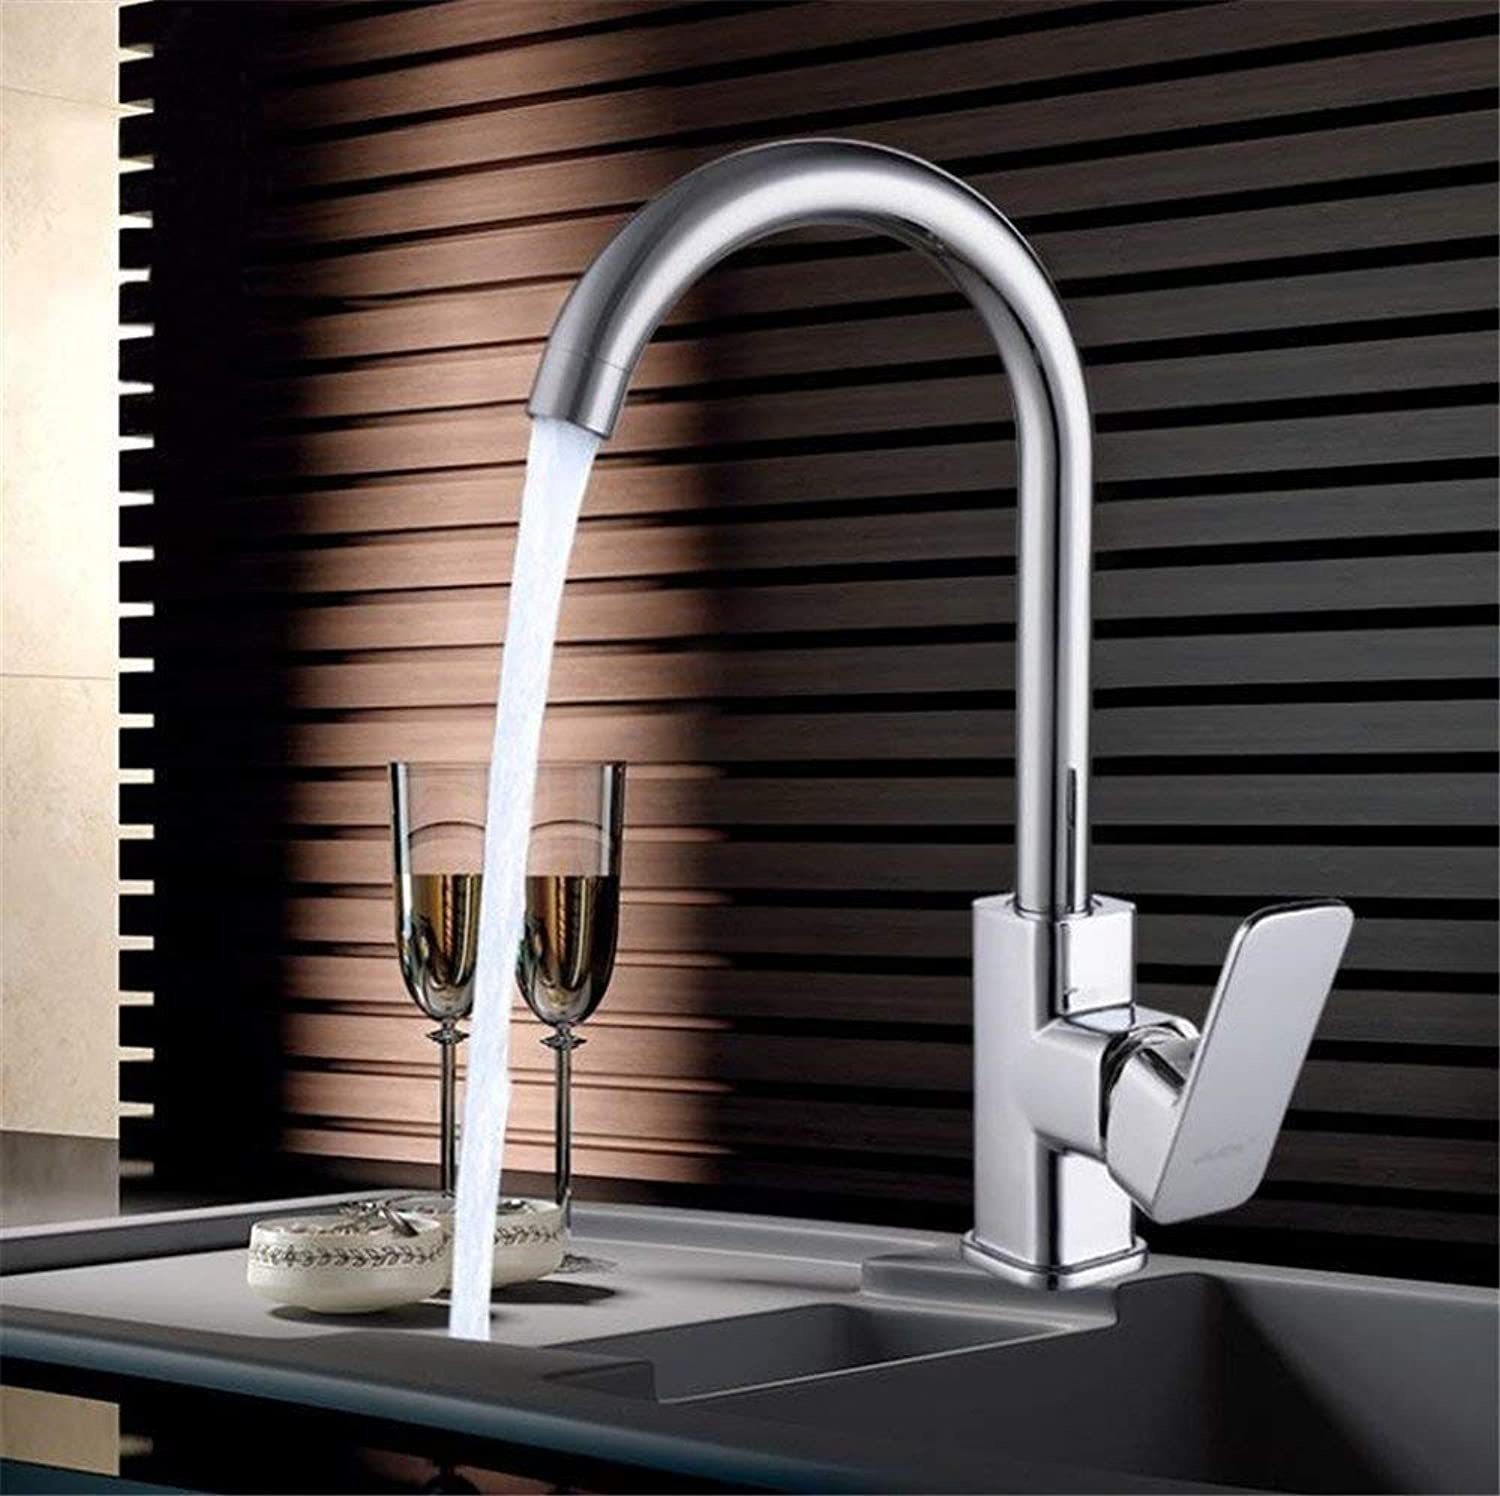 Oudan All Copper Kitchen Faucet Joint Cold Vegetables Basin Sink 304 Stainless Steel Splash redatable Ceramic Valve Core Single Household Cold (color   -, Size   -)